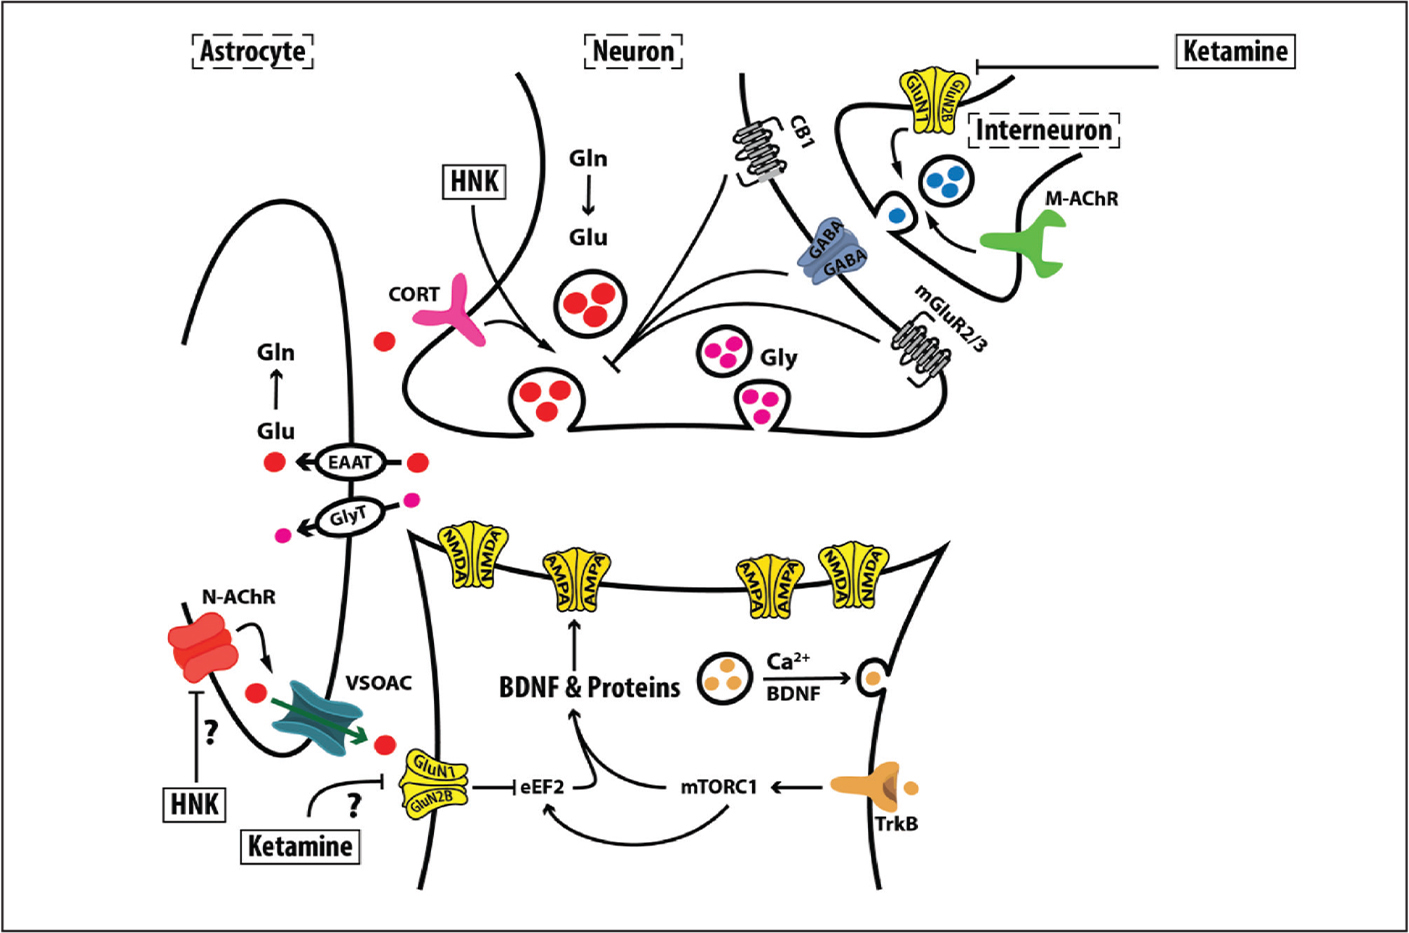 The mechanism of action of rapid-acting antidepressants (RAADs). The figure depicts the targets of a glutamatergic synapse that might lead to the RAAD effects of ketamine and its metabolite hydroxynorketamine (HNK). Ketamine is thought to block interneuron NMDAR signaling leading to glutamate release disinhibition and transient surge in postsynaptic AMPA and NMDA receptors activity, ultimately resulting in increased protein synthesis and synaptic strength in the prefrontal cortex. The latter is thought to be necessary and sufficient to exert RAAD effects. AMPA, alpha-amino-3-hydroxy-5-methyl-4-isoxazolepropionic acid receptor; BDNF, brain-derived neurotrophic factor; CB1, cannabinoid receptor; EAAT, excitatory amino acid transporter; eEF2, eukaryotic elongation factor 2; Gln, glutamine; GluN1, NMDA subtype 1; GluN2B, NMDA subtype 2B; Glu, glutamate; Gly, Glycine; GlyT, Glycine transporter; M-AChR, muscarinic acetylcholine receptor; mGluR2/3, metabotropic glutamate receptor subtype 2 and 3; mTORC1, mechanistic target of rapamycin complex 1; N-AChR, nicotinic AChR; TrkB, tyrosine kinase B receptor; VSOAC, volume-sensitive organic osmolyte/anion channel. Adapted with permission from the Emerge Research Program (http://emerge.care).